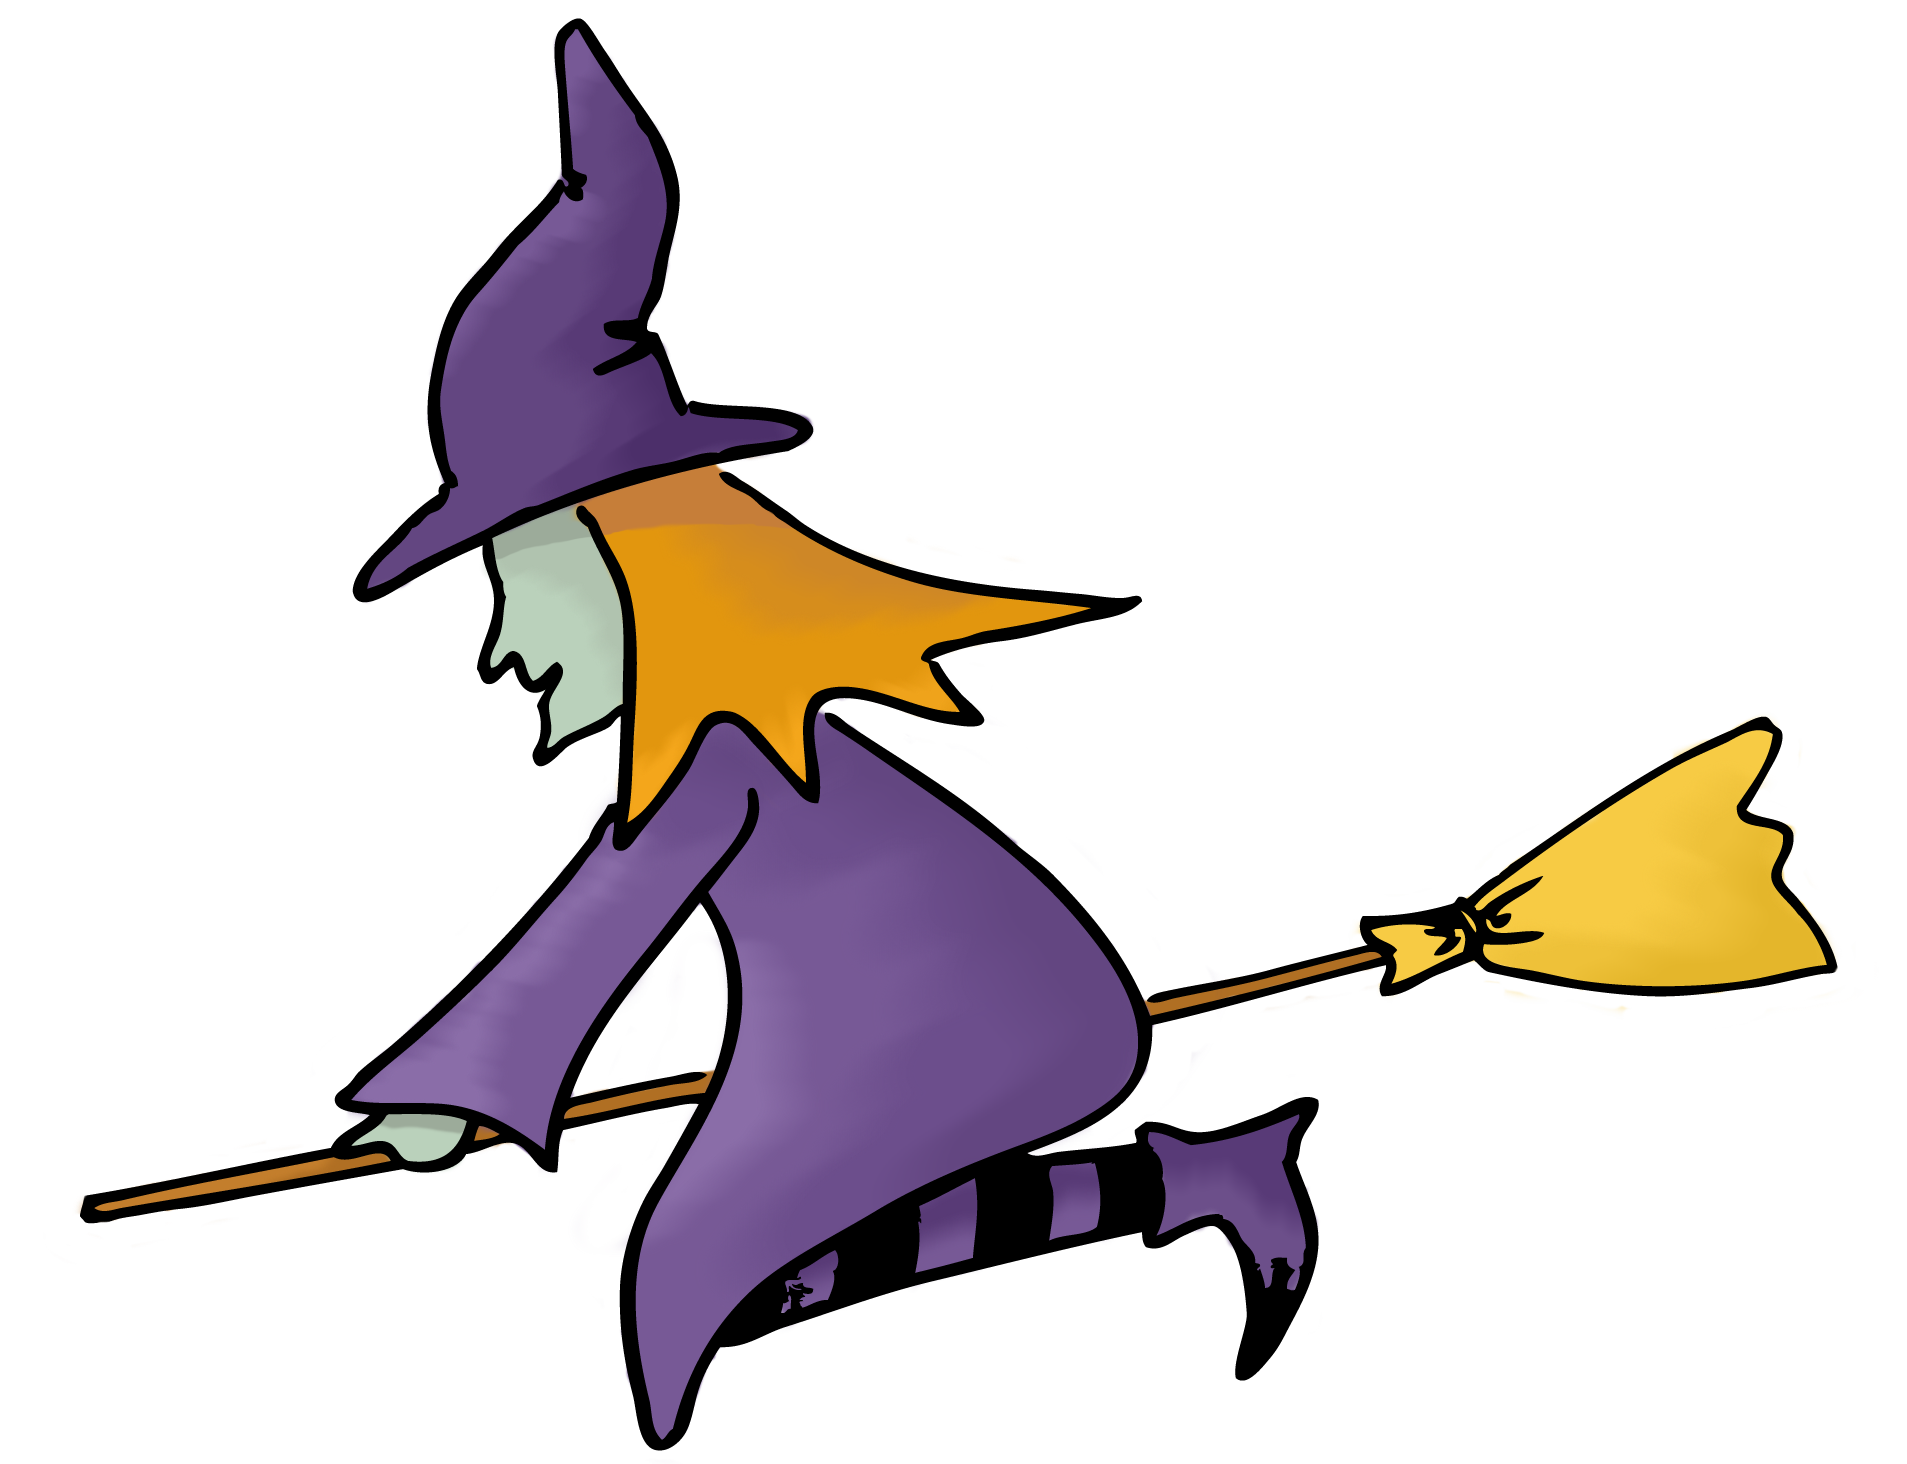 Witch clipart #7